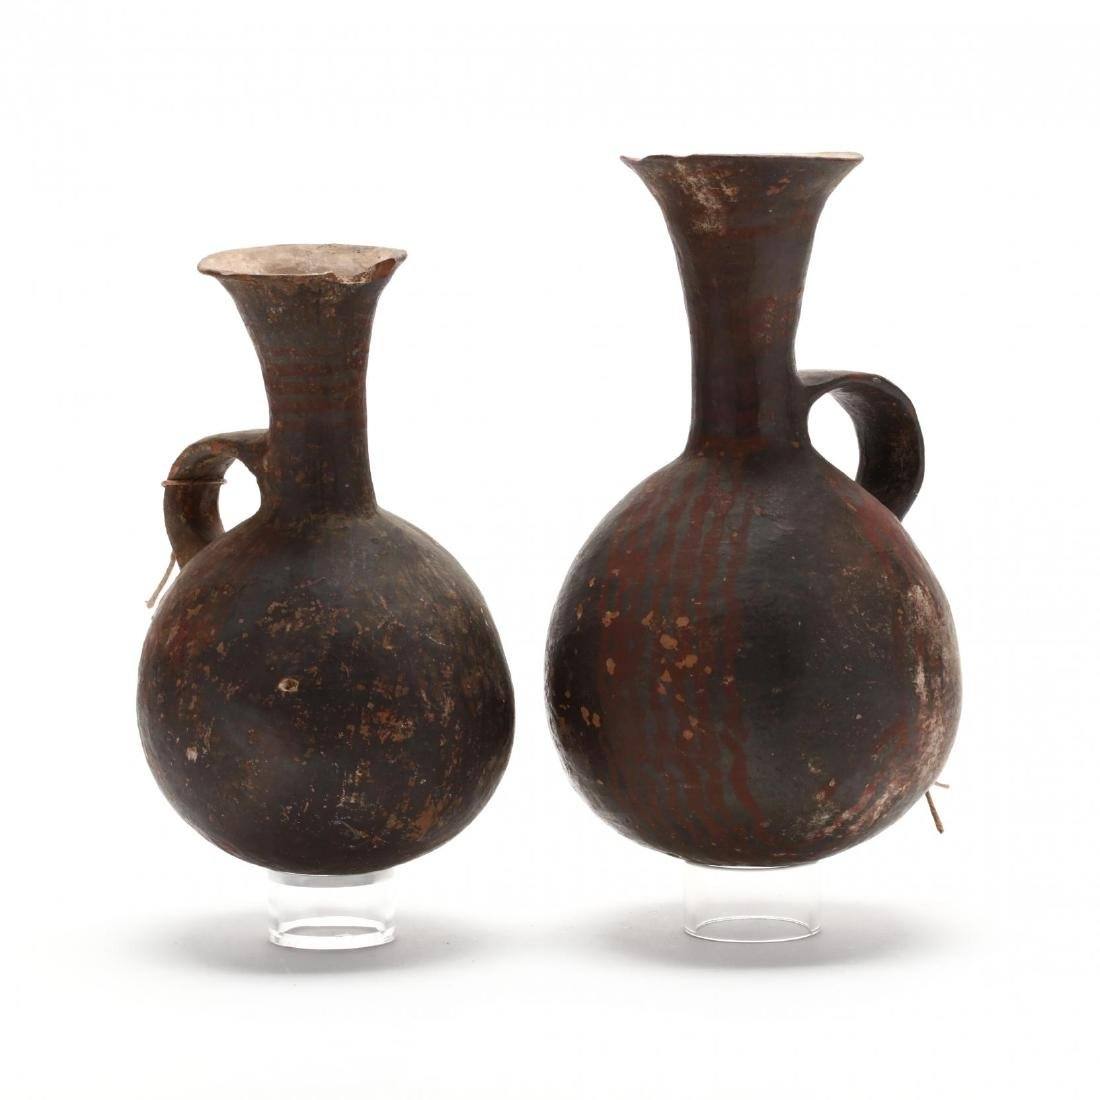 Near Pair of Middle Bronze Age Pitchers